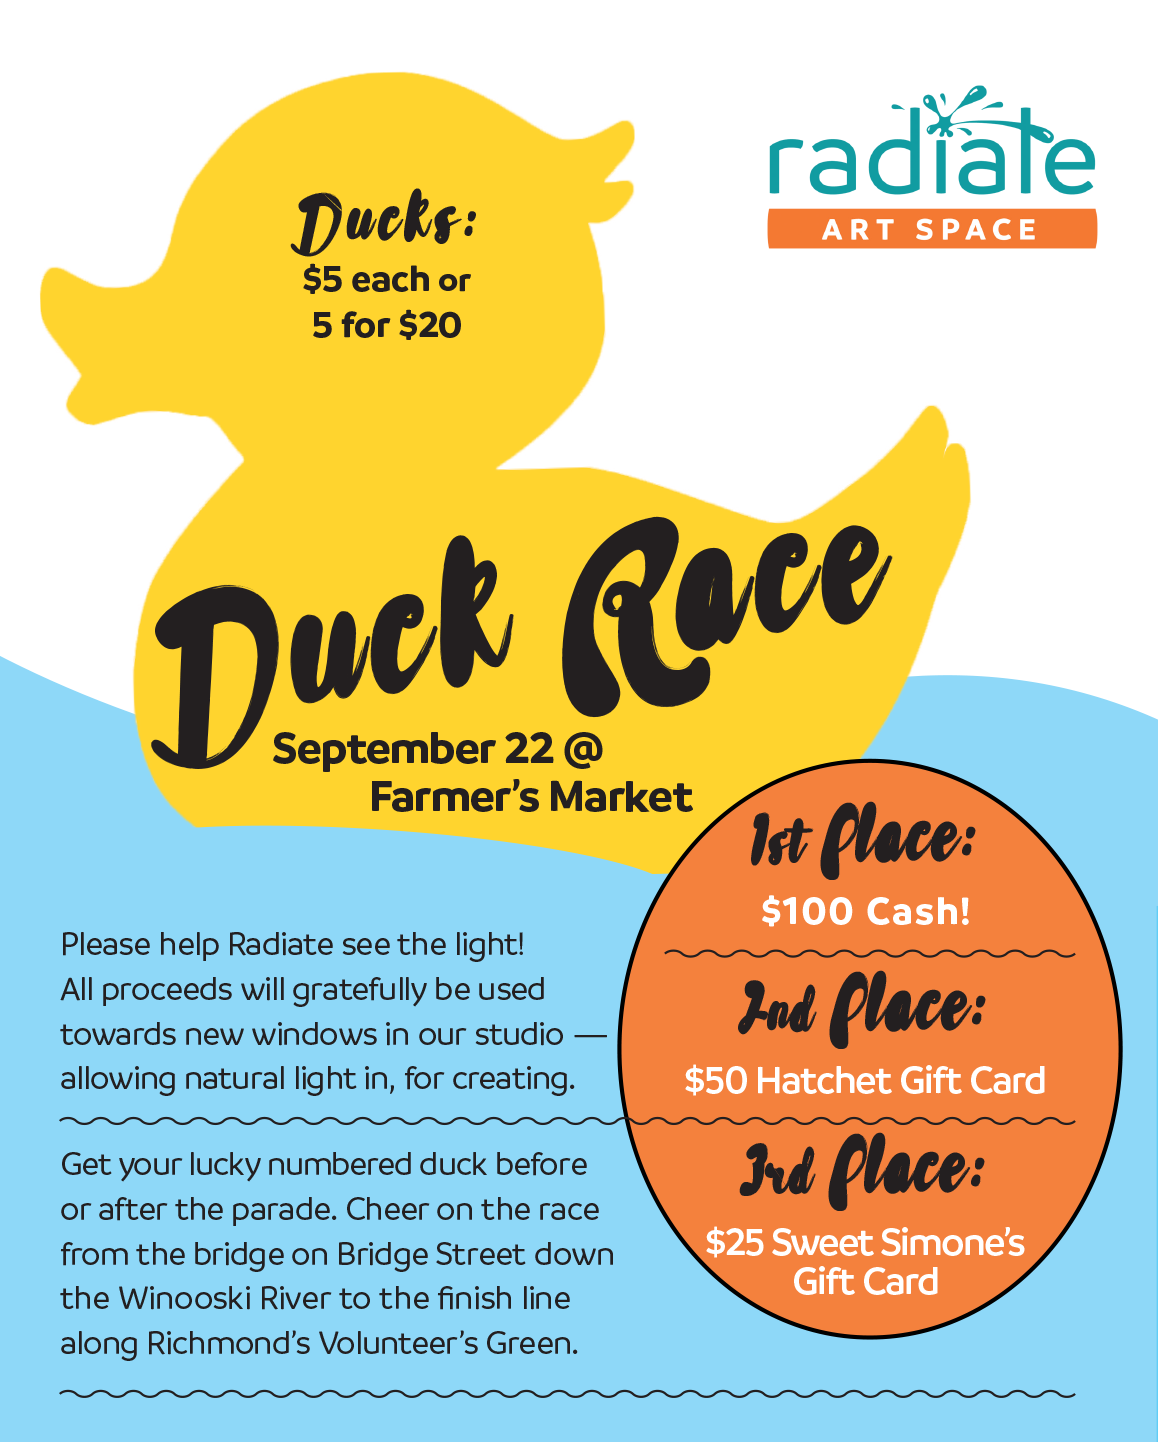 duckrace_flyer.jpg